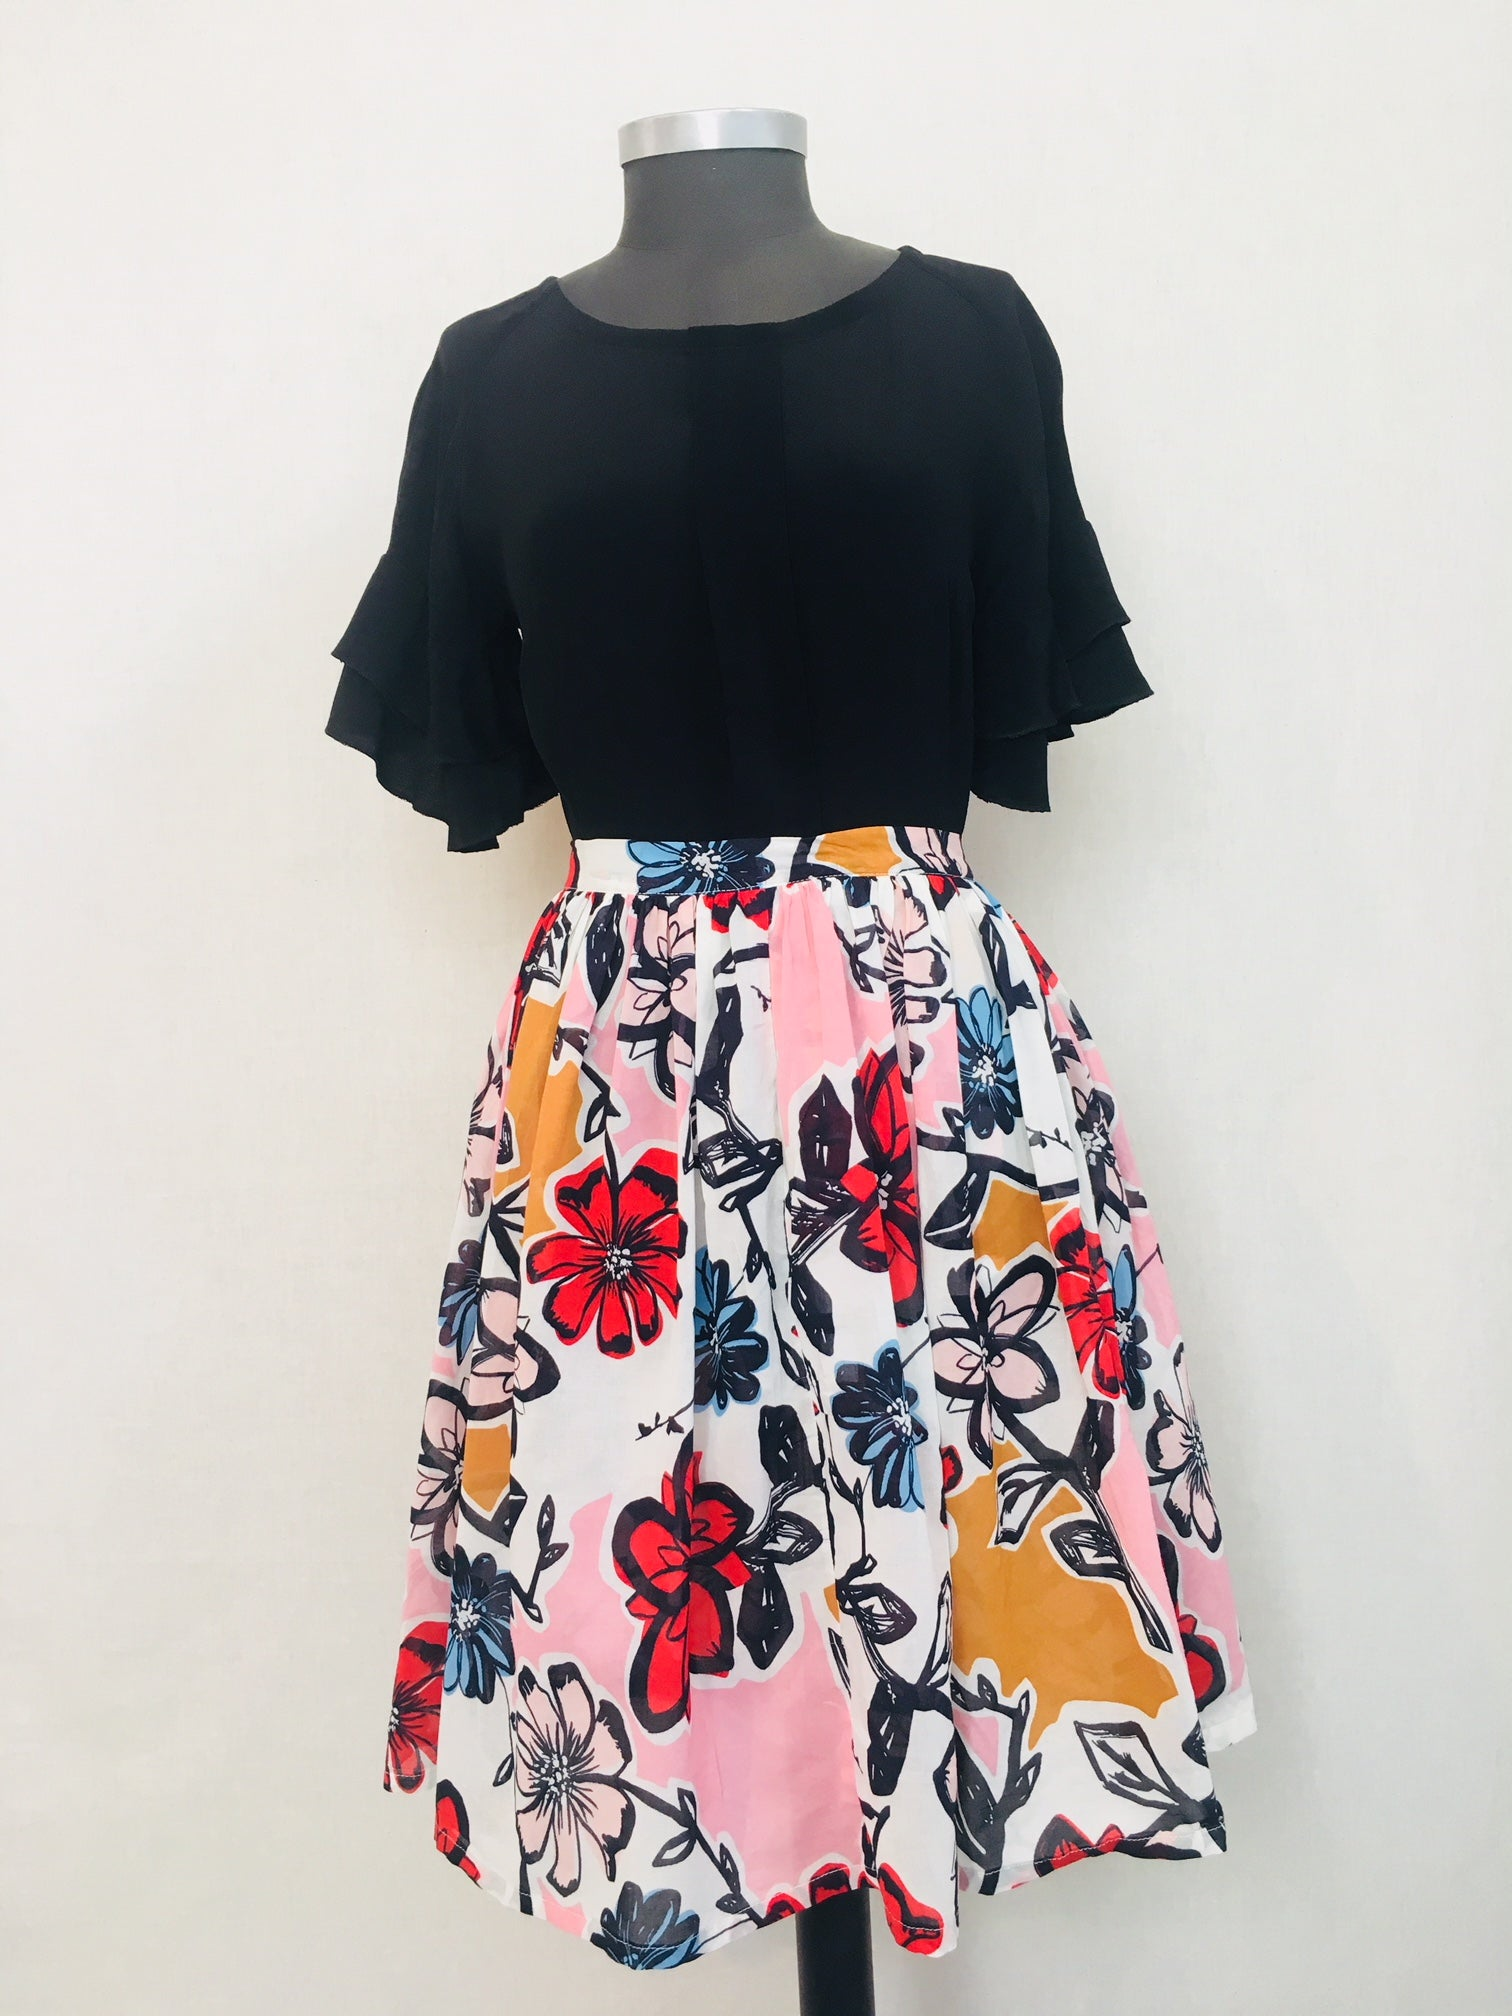 Ruffle Skirt in Flower Power